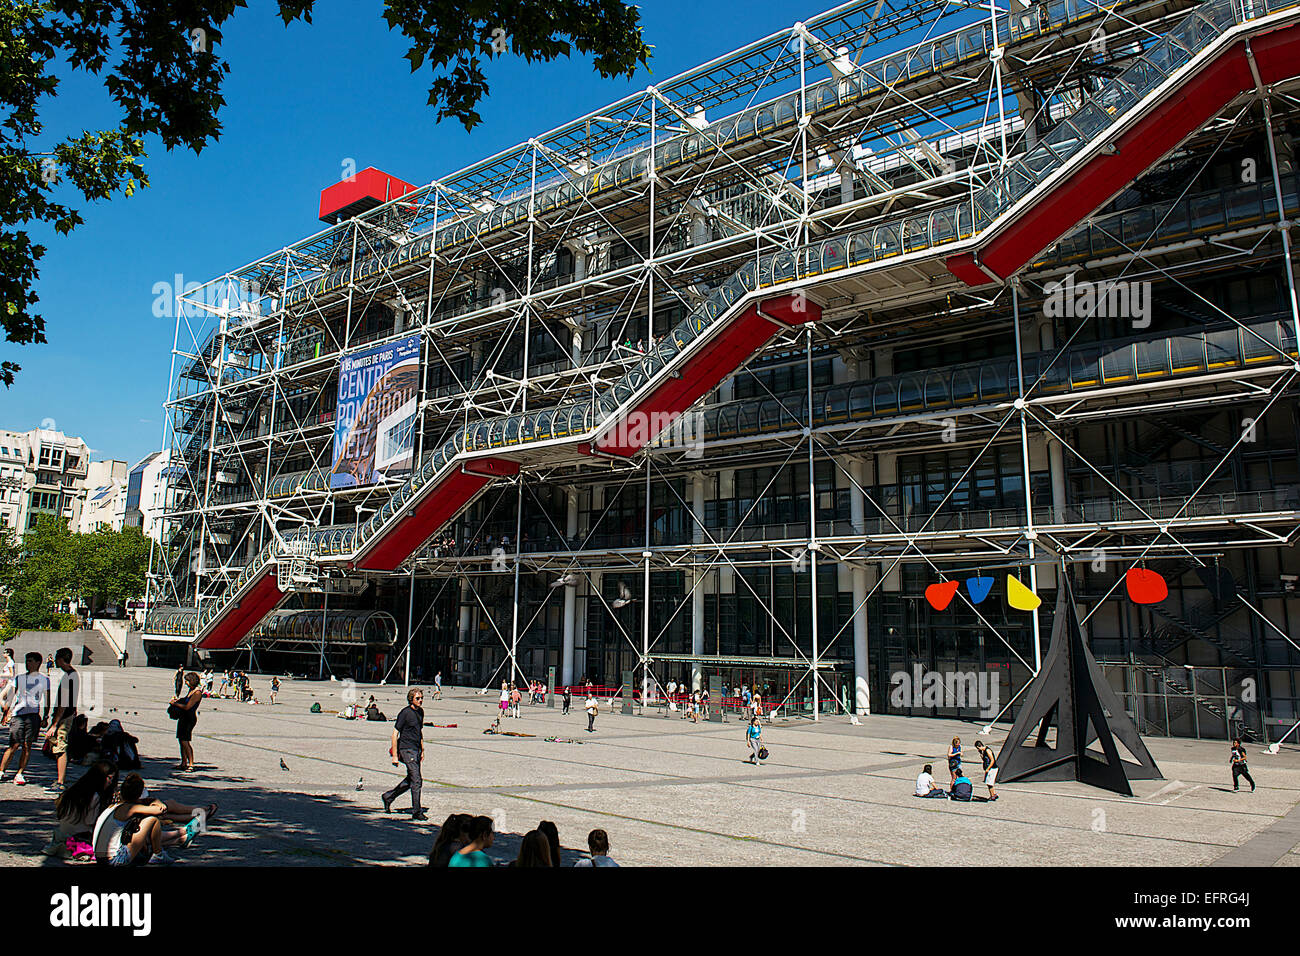 Centre Pompidou, Paris, France - Stock Image